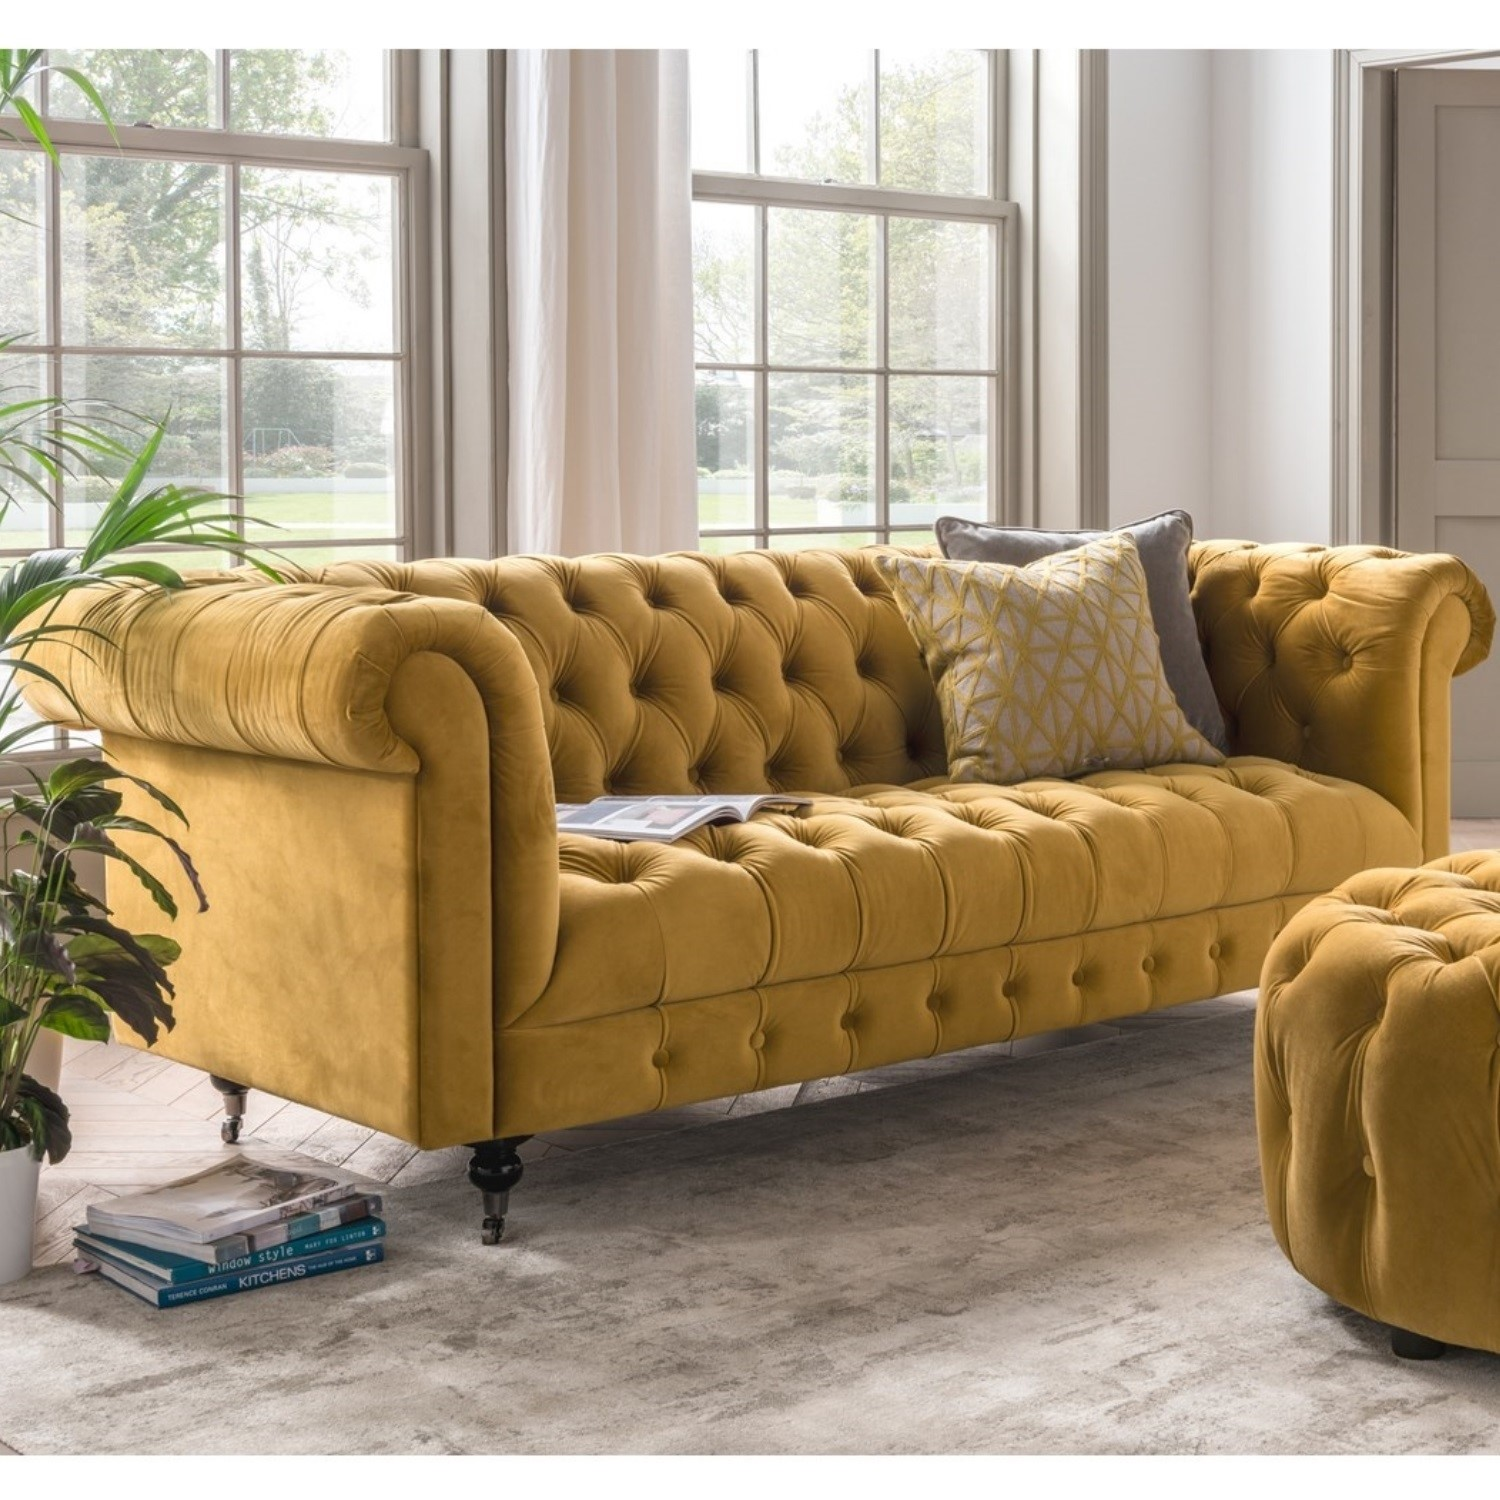 Incredible Darby 3 Seater Chesterfield Sofa In Mustard Yellow Velvet Gmtry Best Dining Table And Chair Ideas Images Gmtryco